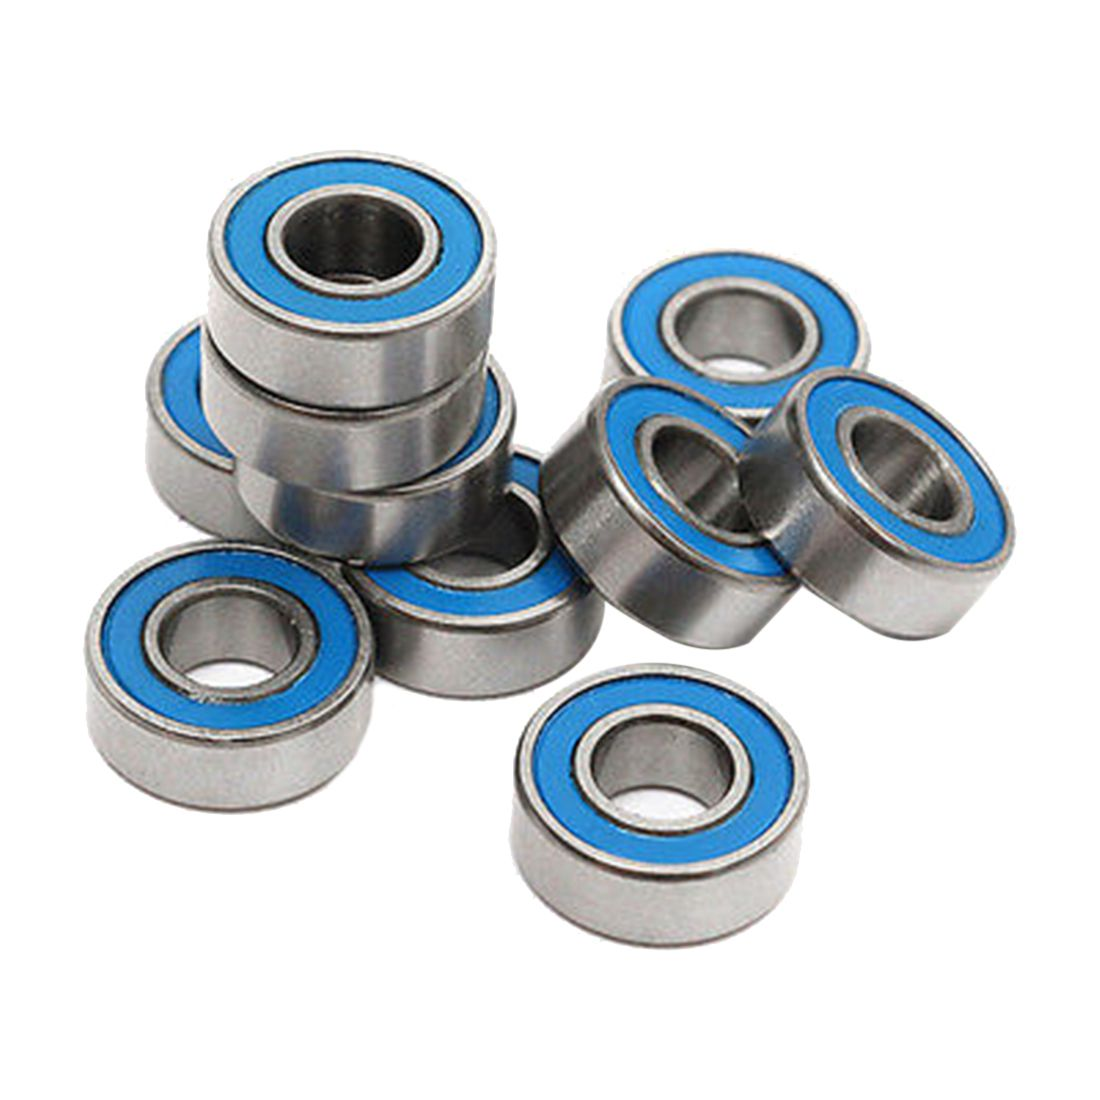 10Pcs MR115 2RS Ball Bearings 5x11x4mm For Traxxas Slash Rustler Stampede Wheel Cycling Accessories